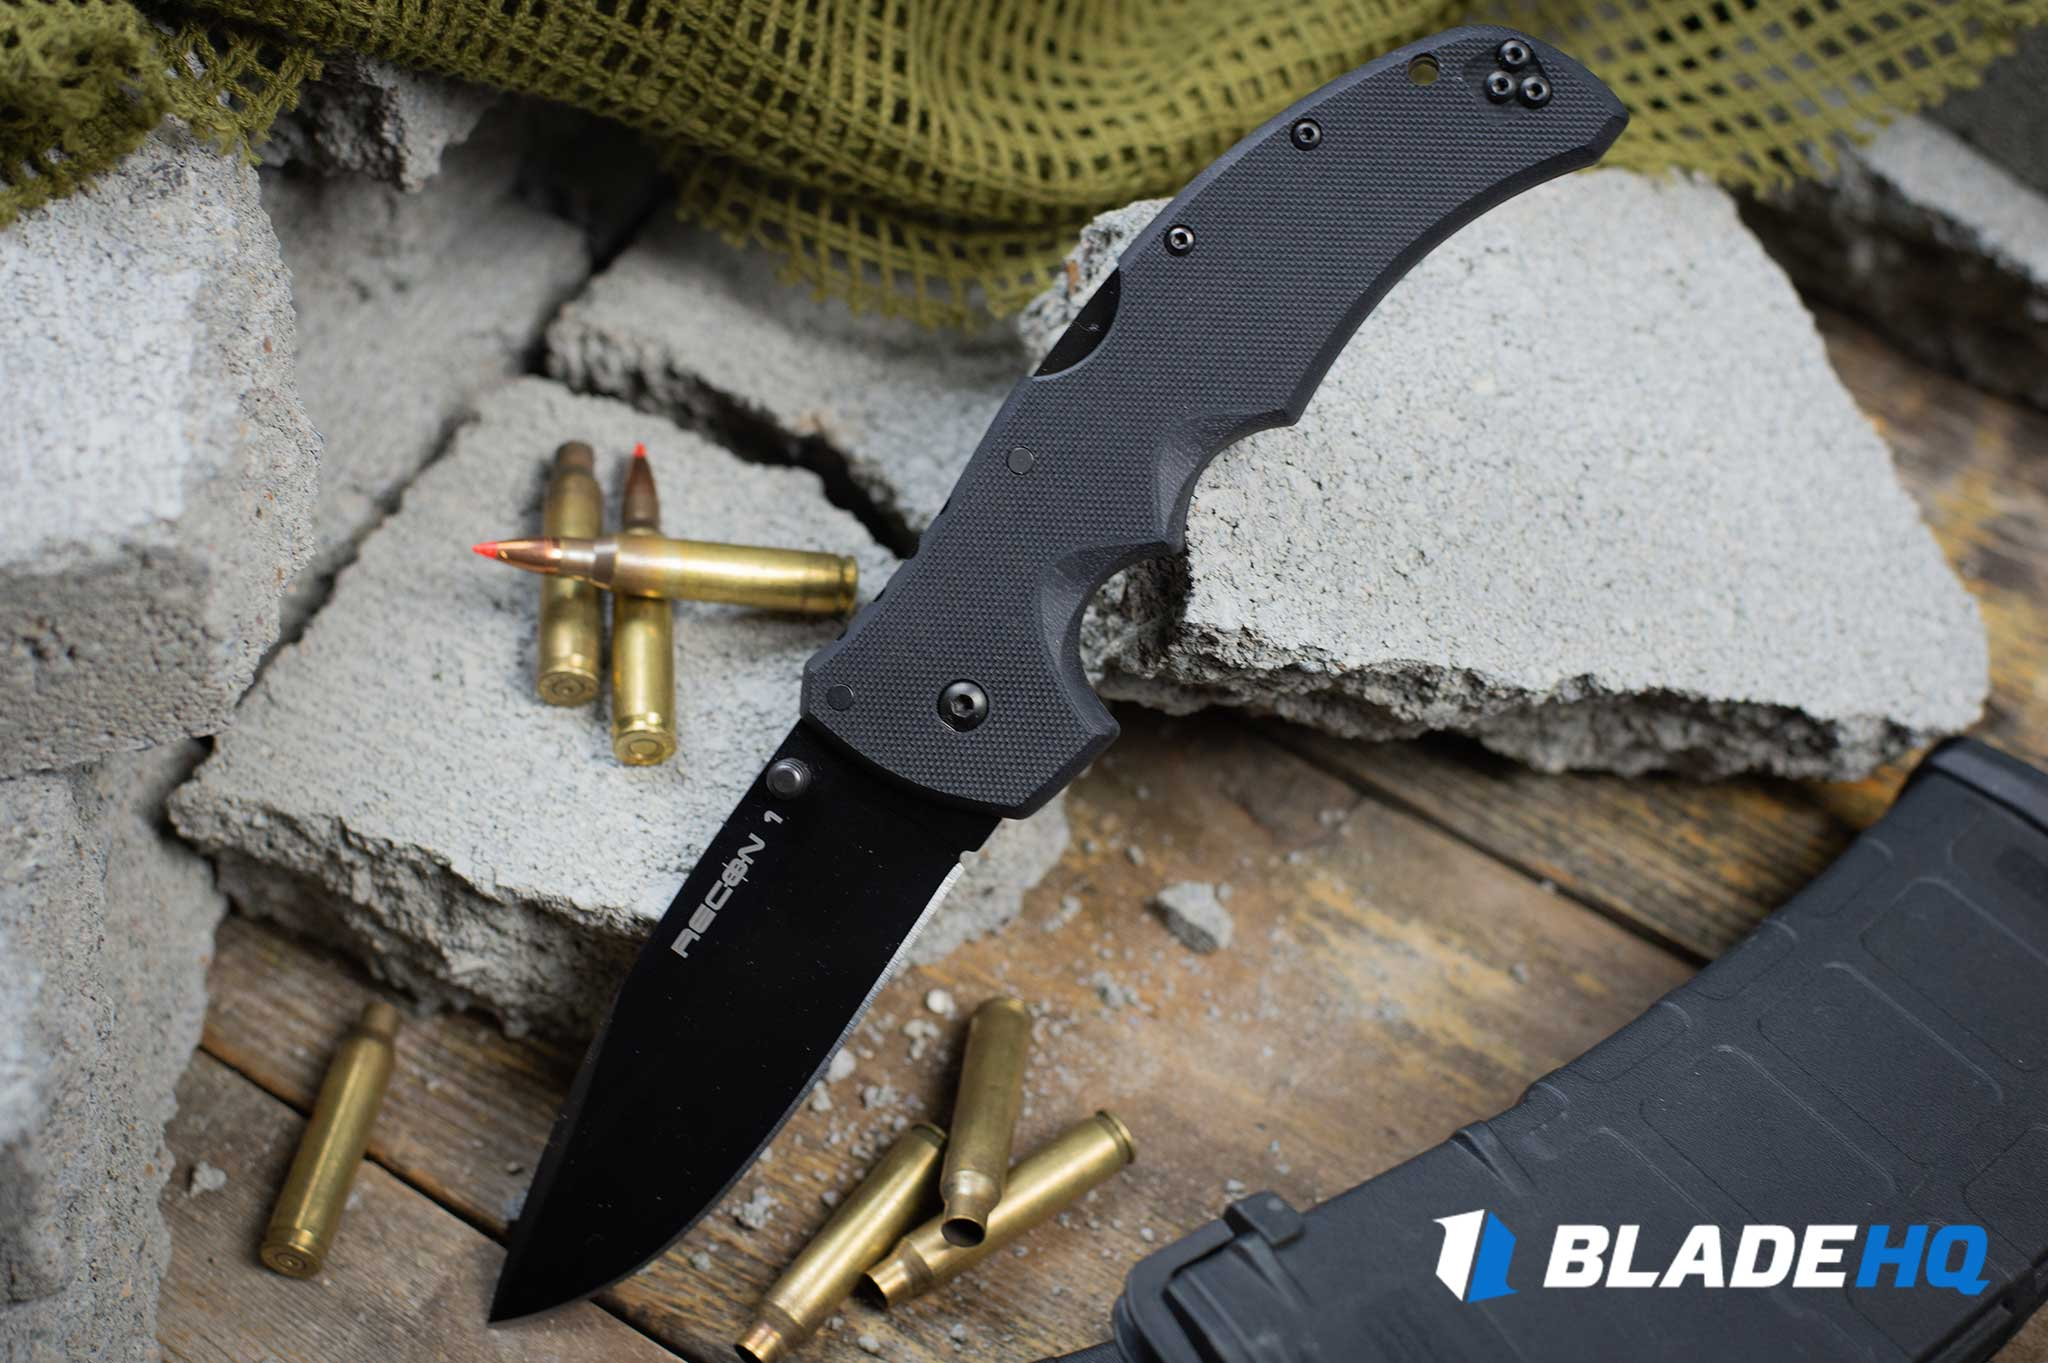 Cold Steel Recon 1 Knife Pocket Jewelry